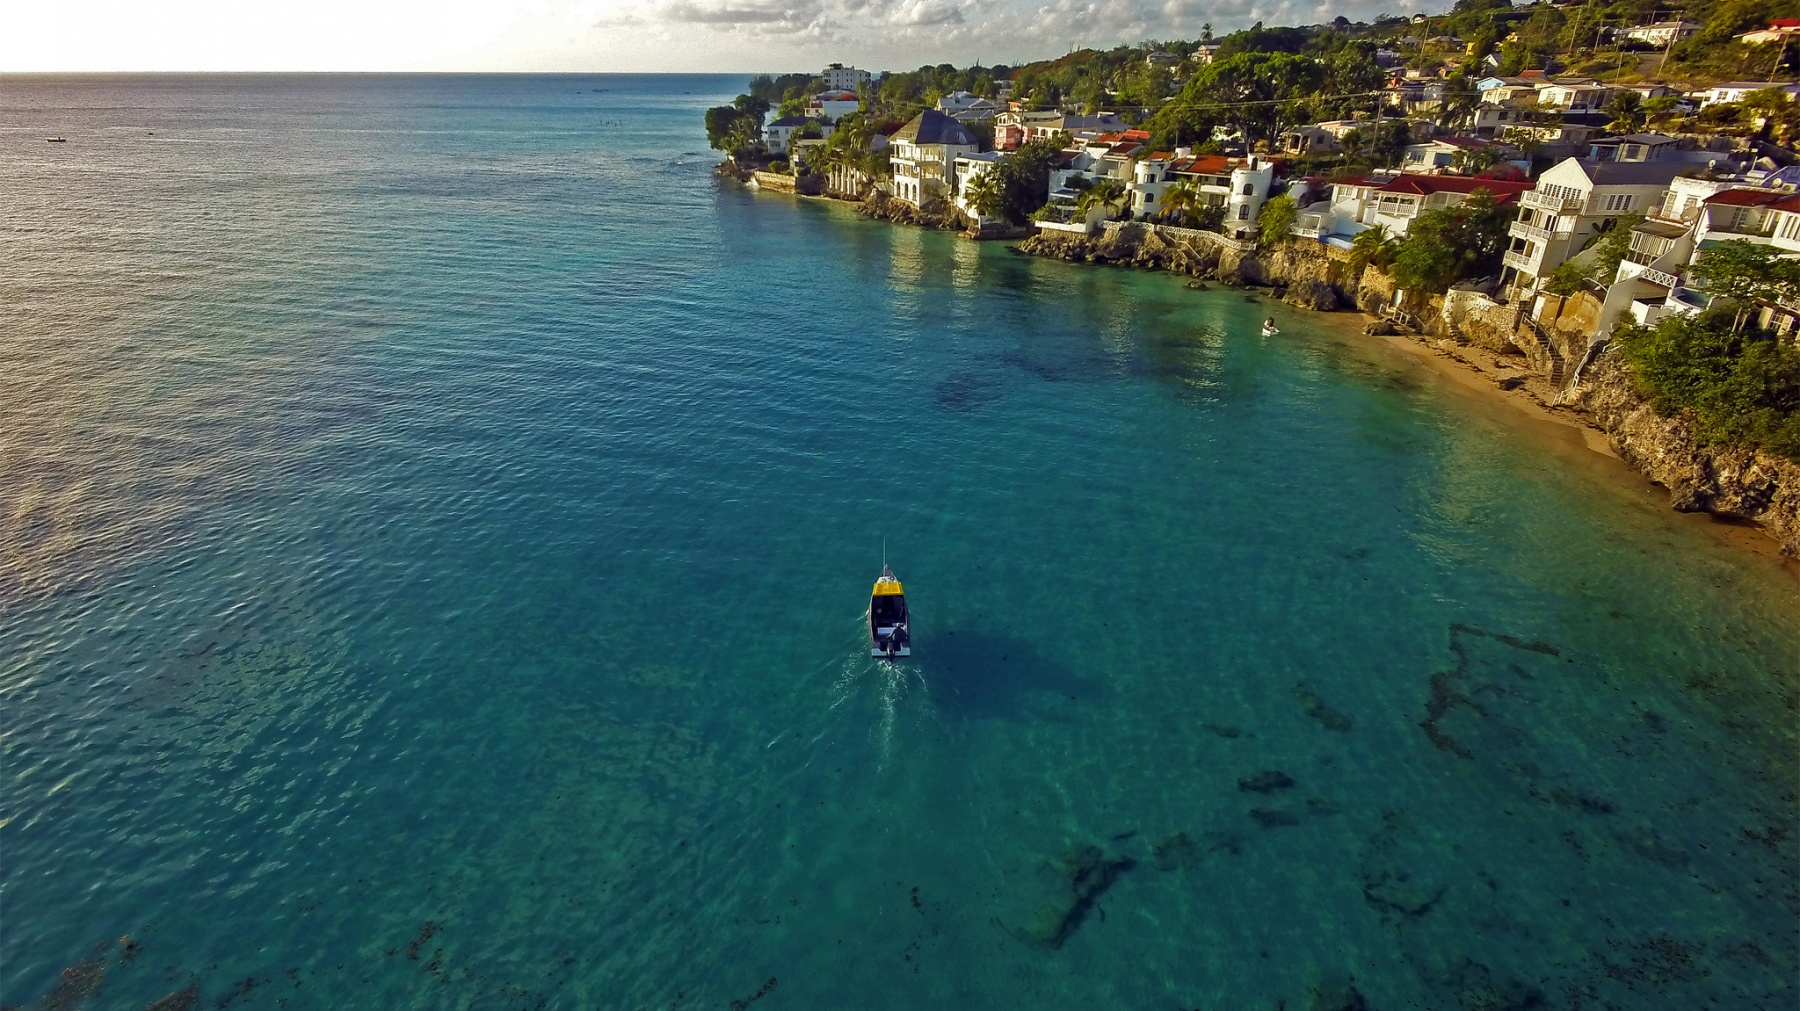 Batts Rock on the West Coast of Barbados during the late afternoon